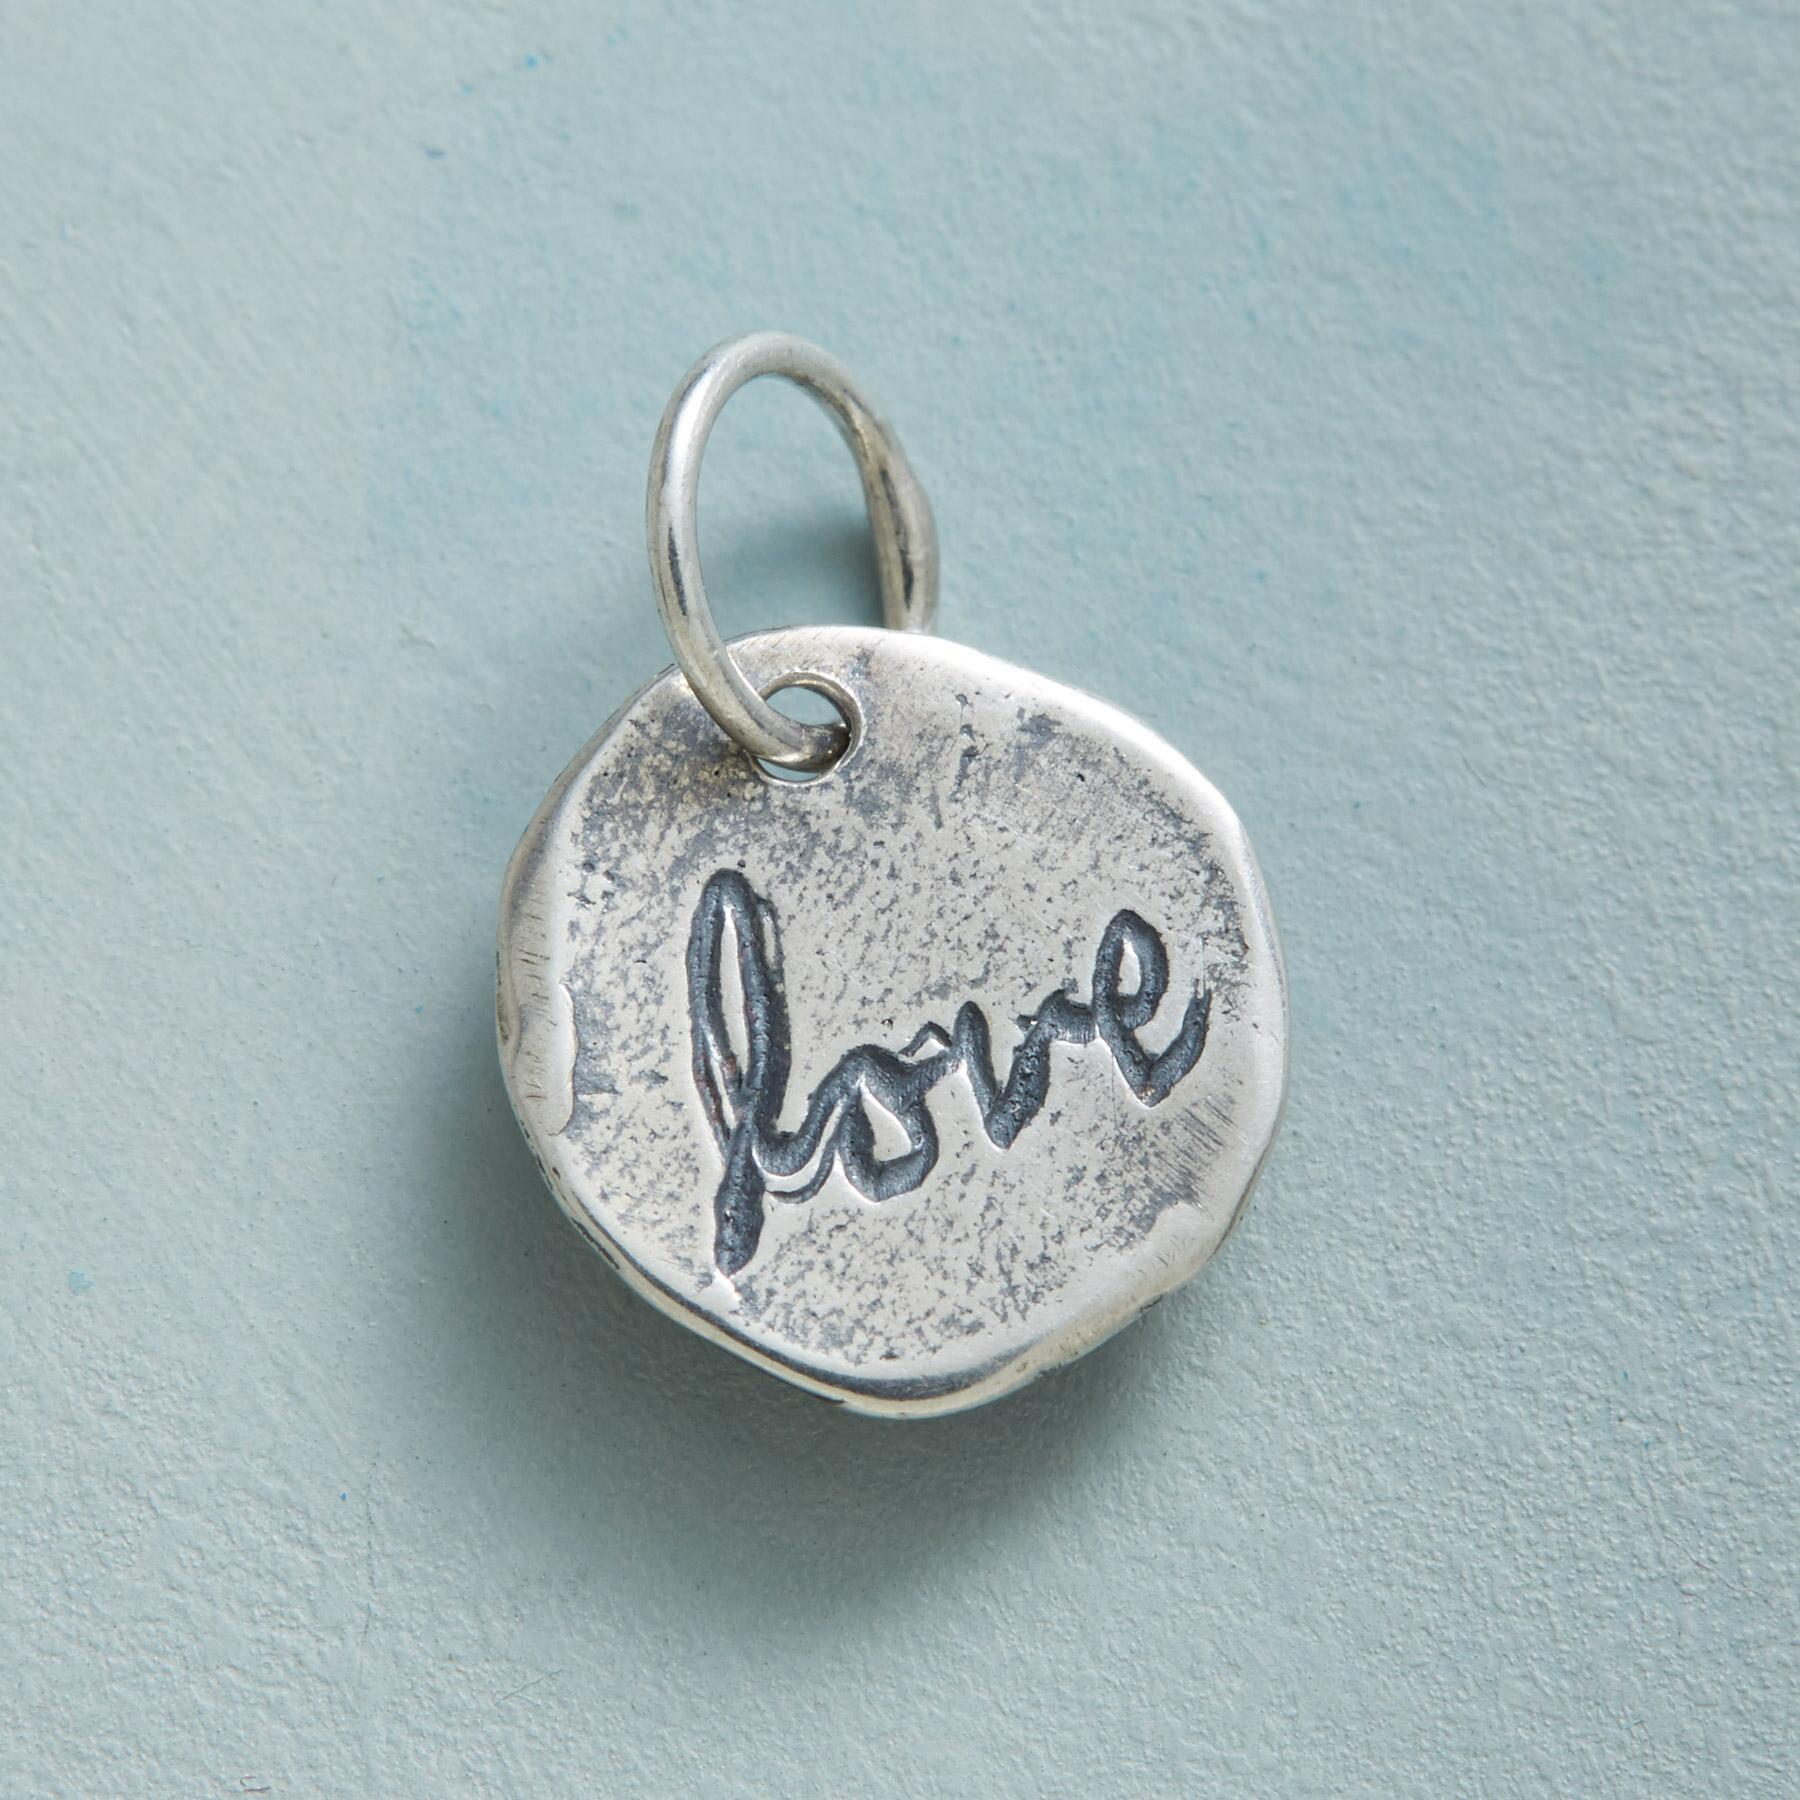 STERLING SILVER LETTERS OF LOVE CHARM: View 2